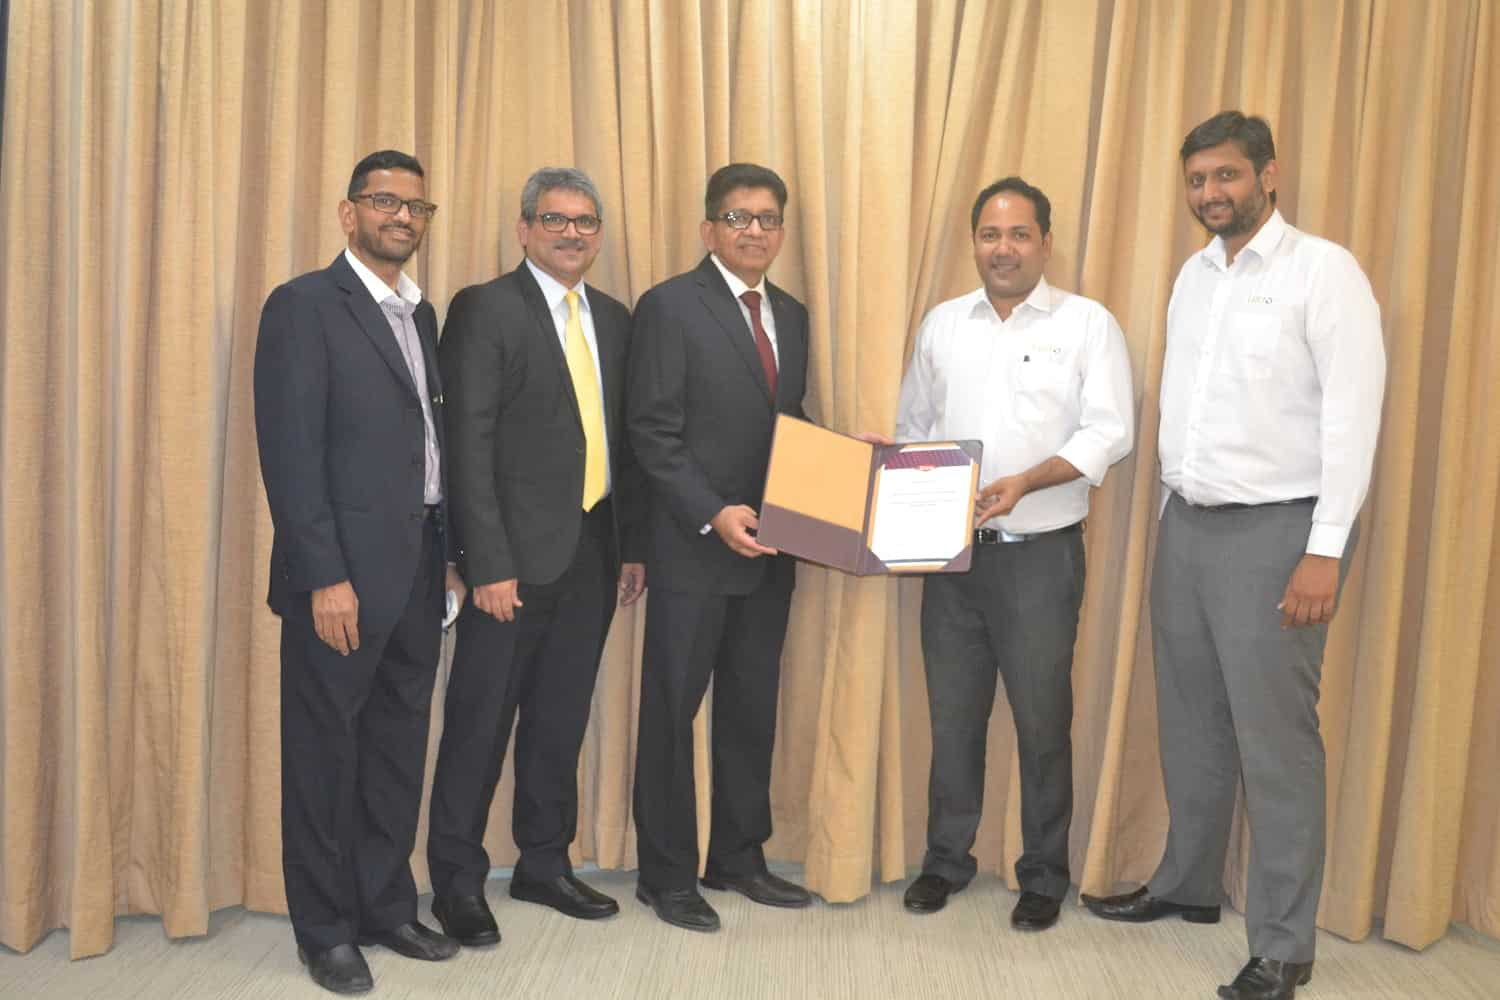 launch of post-consumer recycled (PCR) polyethylene film